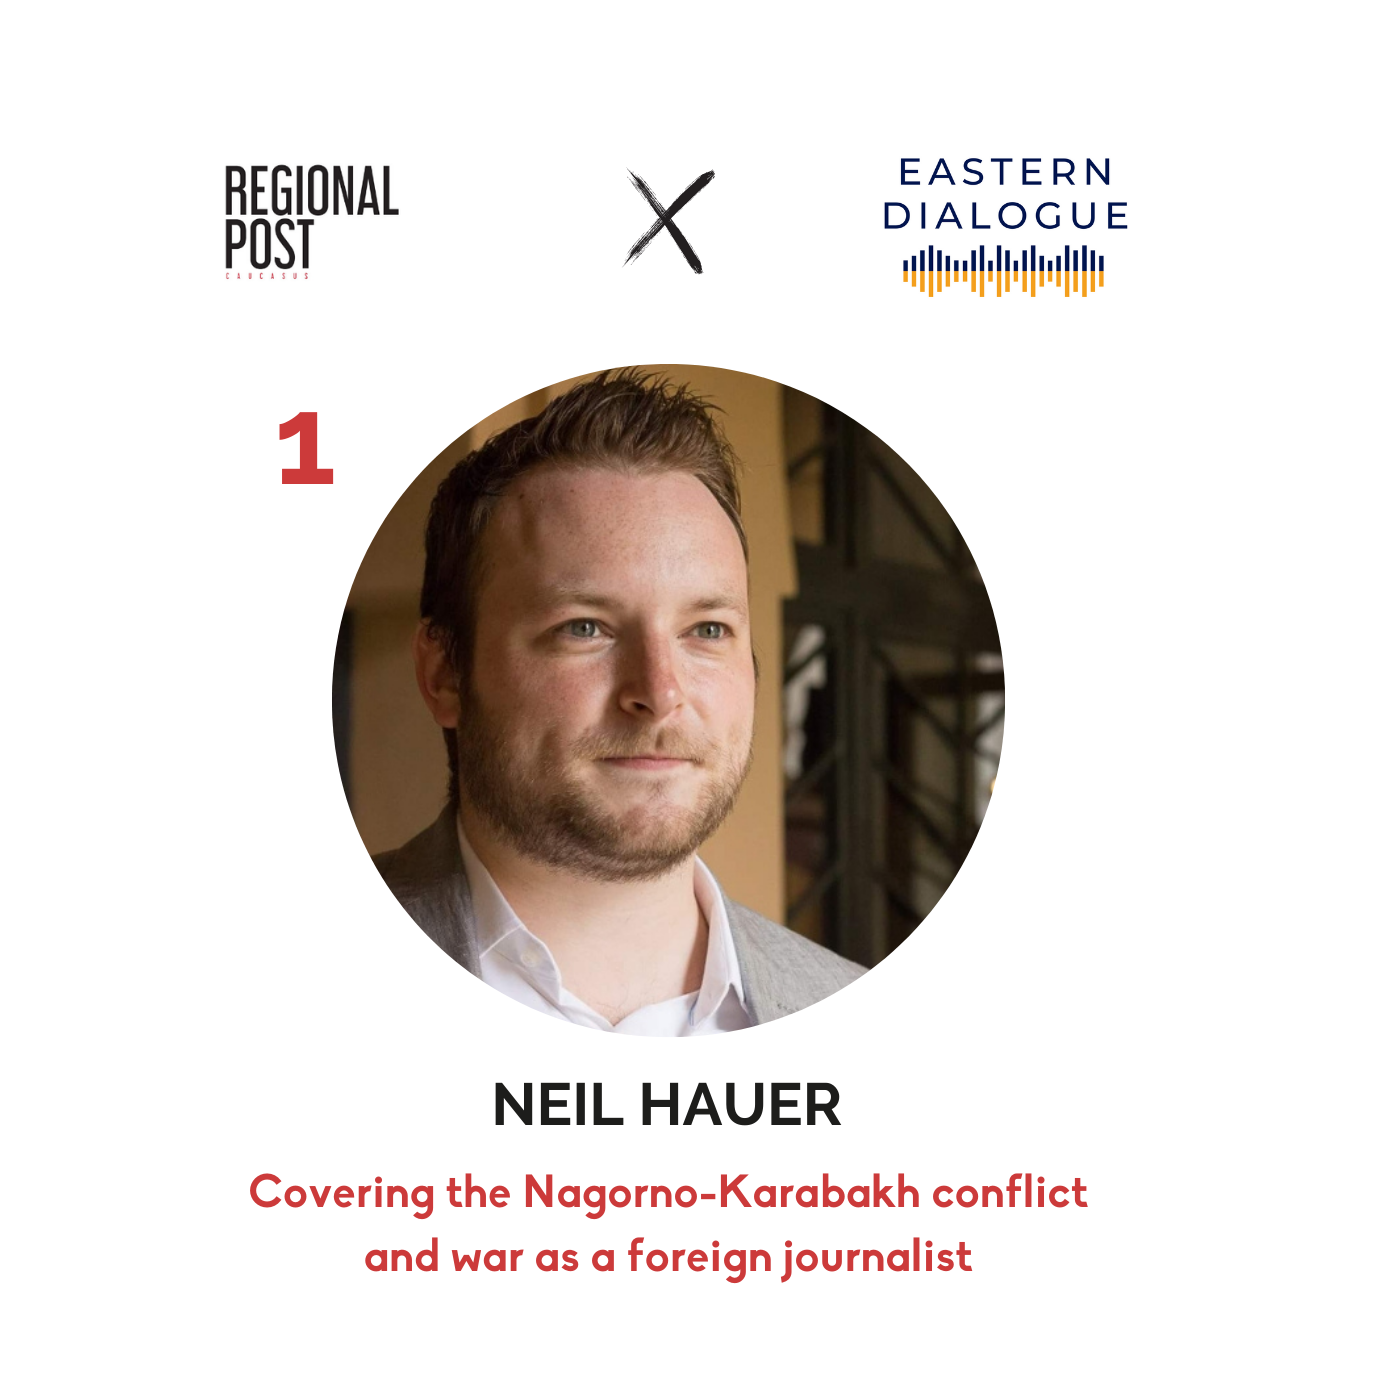 Neil Hauer - Covering the Nagorno-Karabakh conflict & war as a foreign journalist